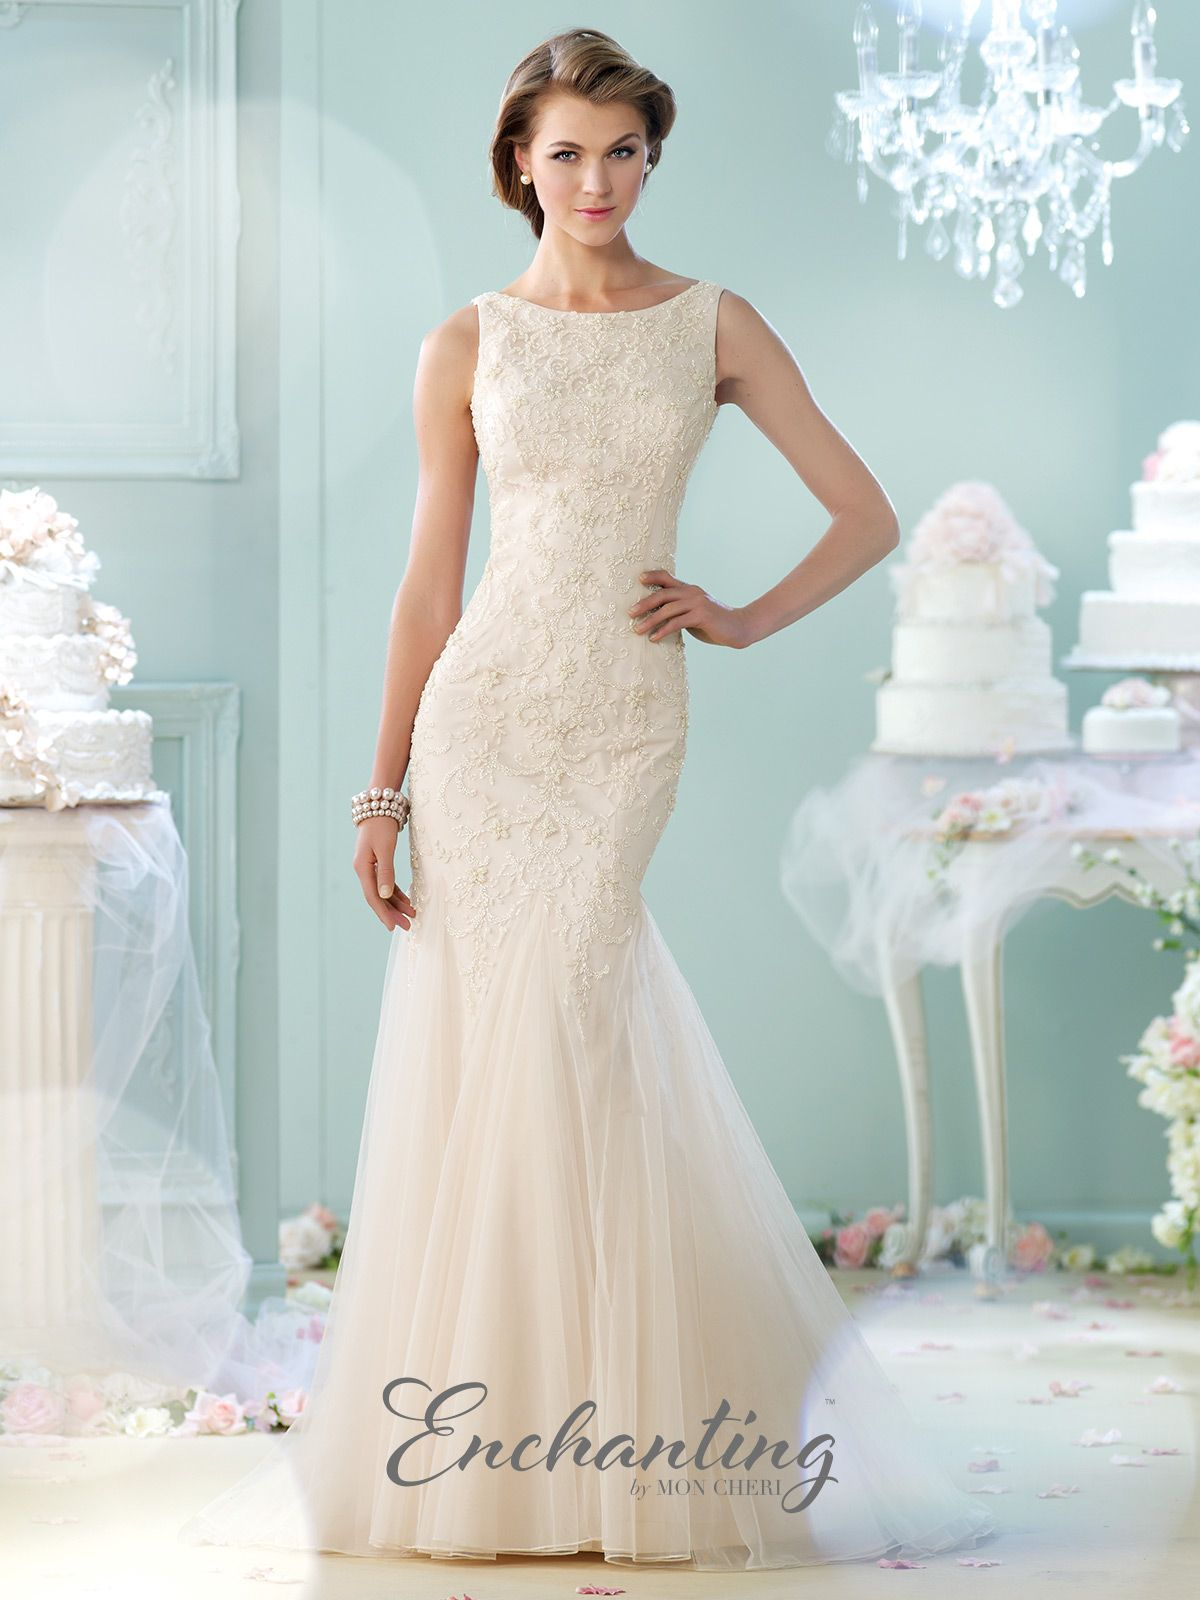 Modern Wedding Dresses 2018 by Mon Cheri | Trumpets, Gowns and ...